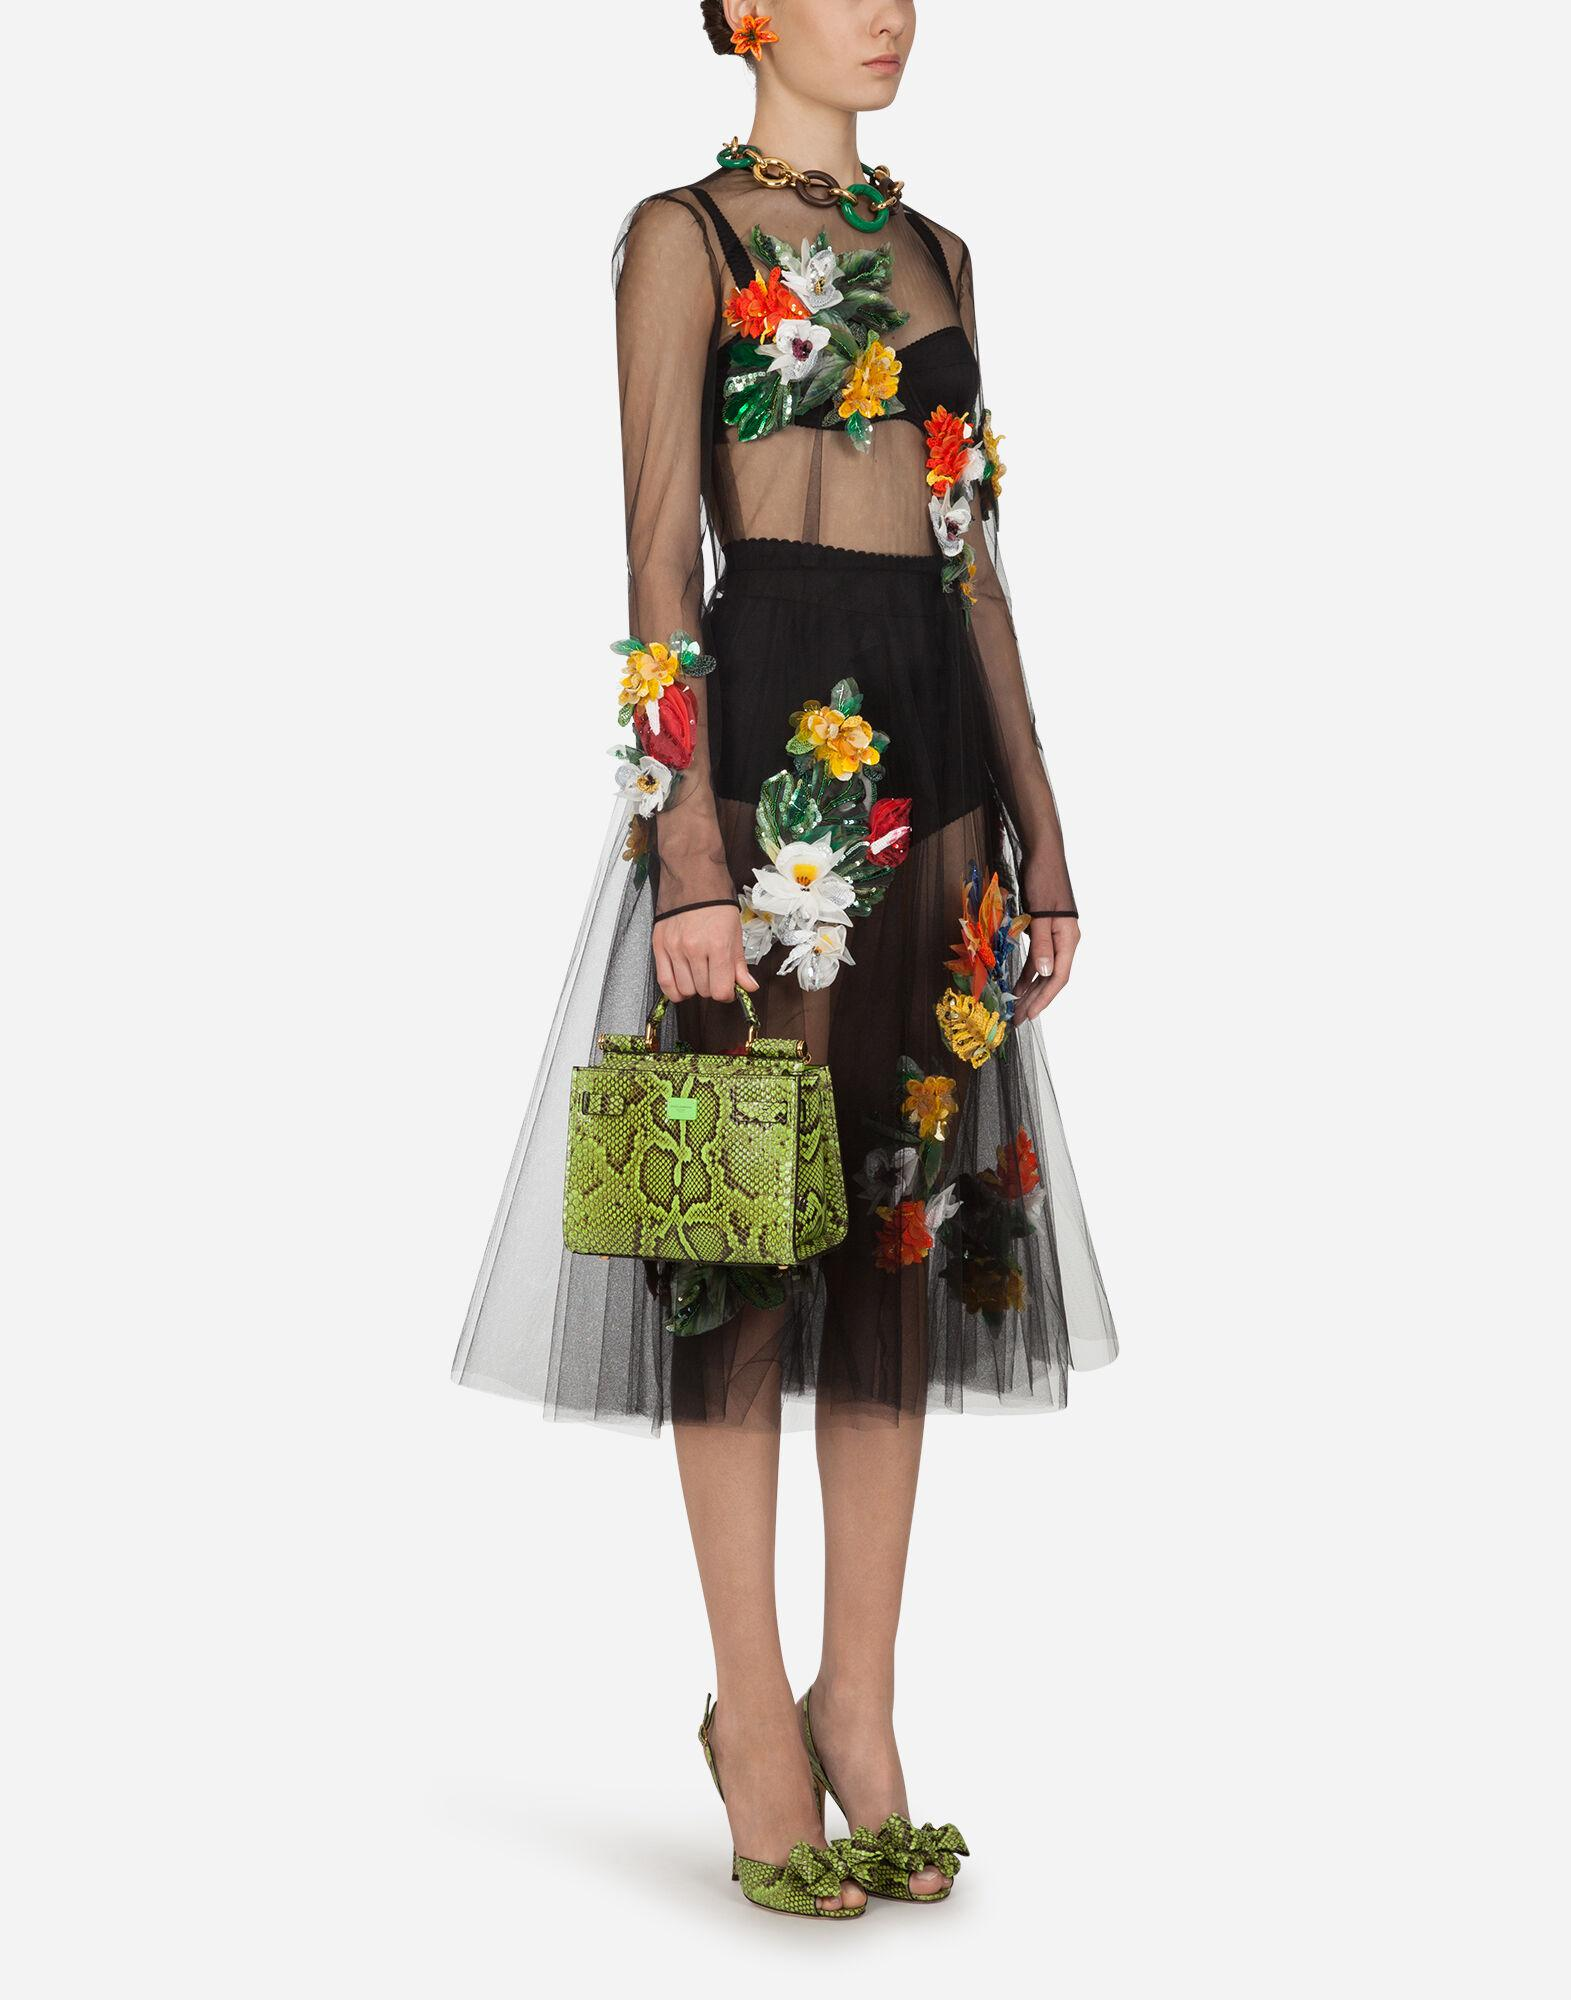 Longuette dress in tulle with embroidery